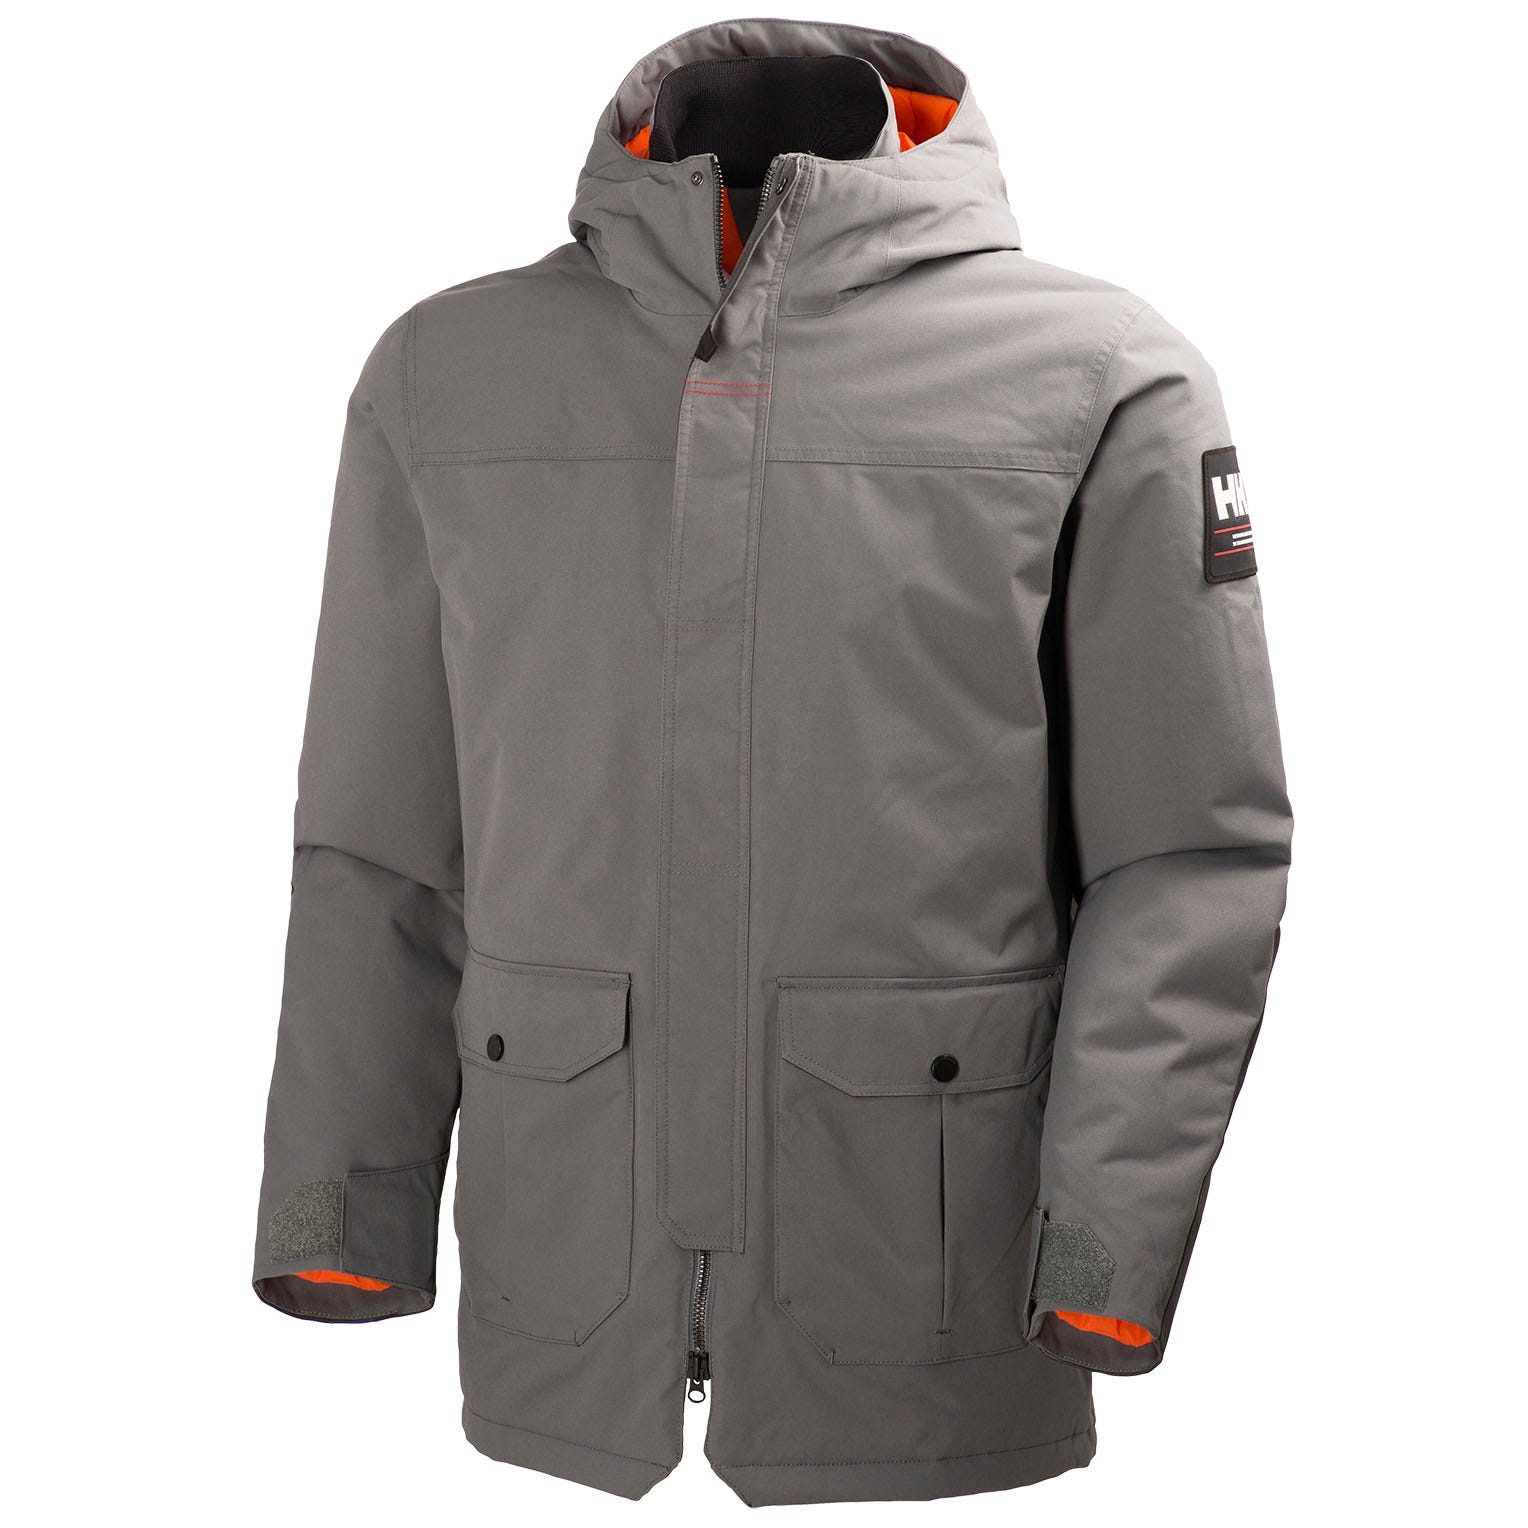 Helly hansen women's urban parka jacket